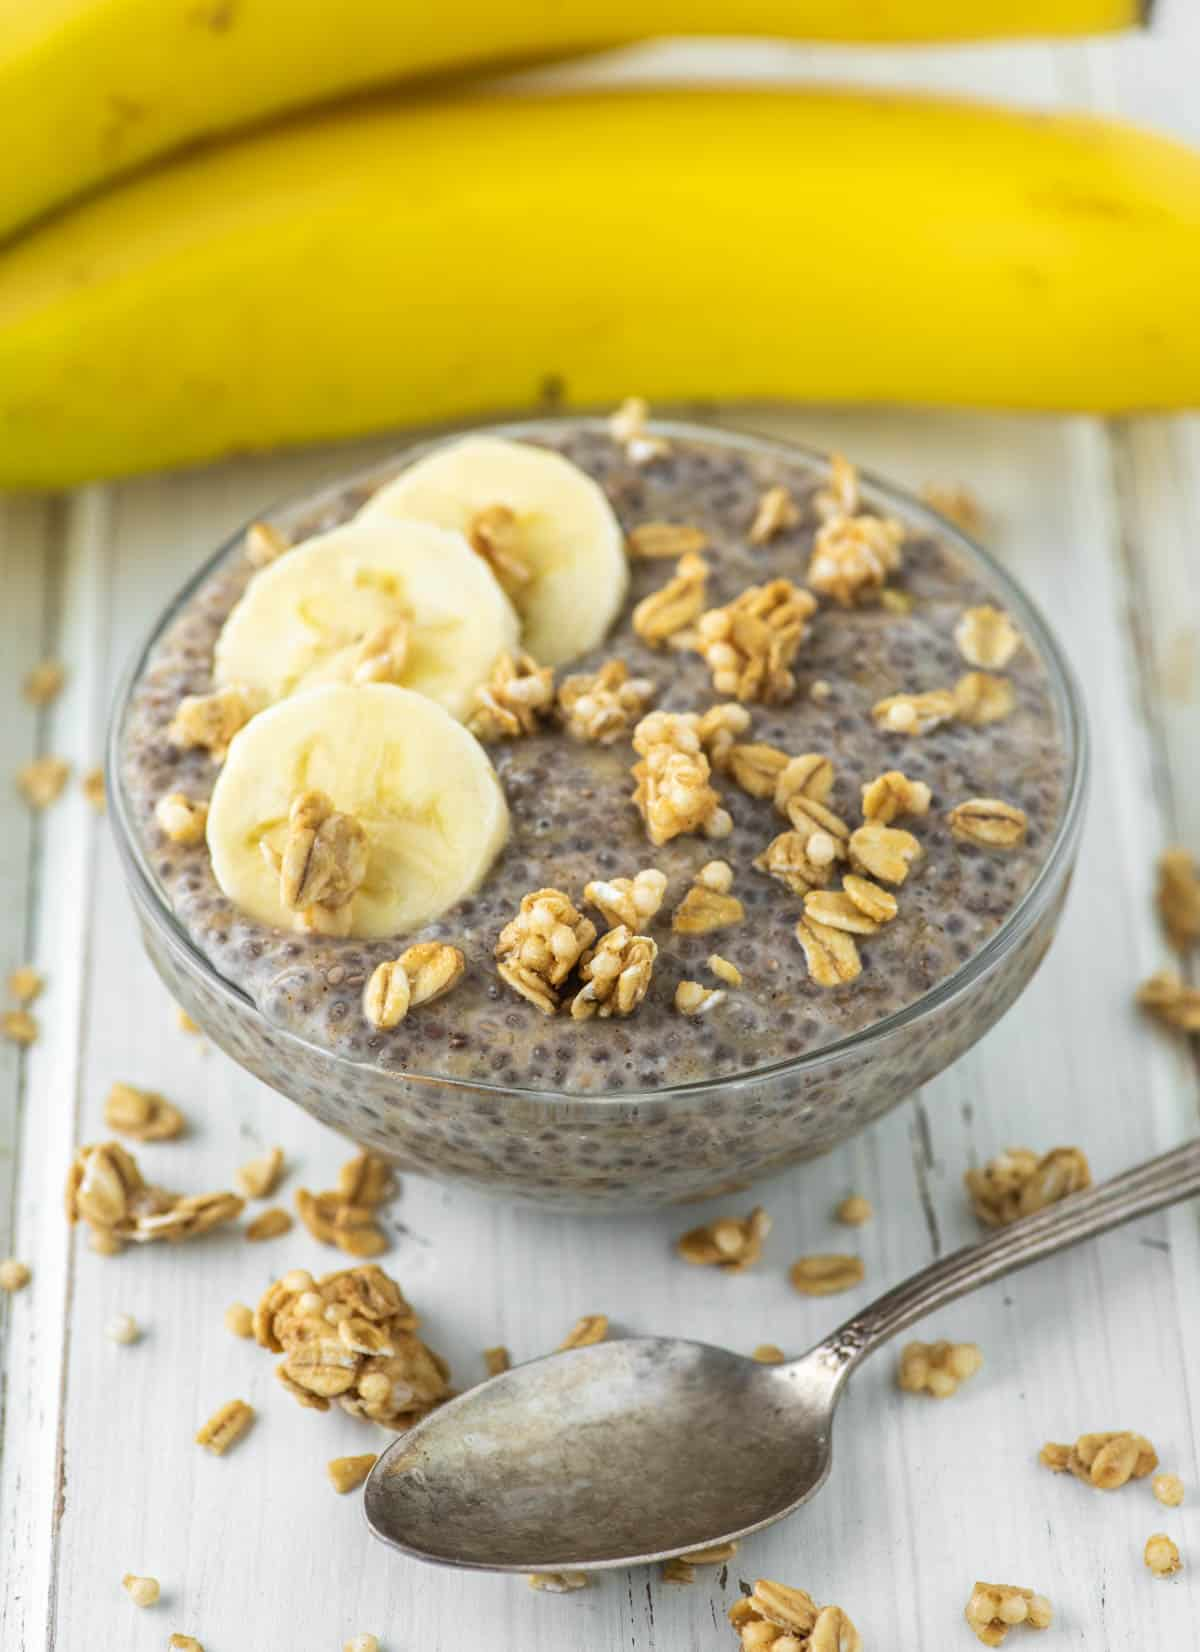 banana chia pudding in glass bowl with bananas in background